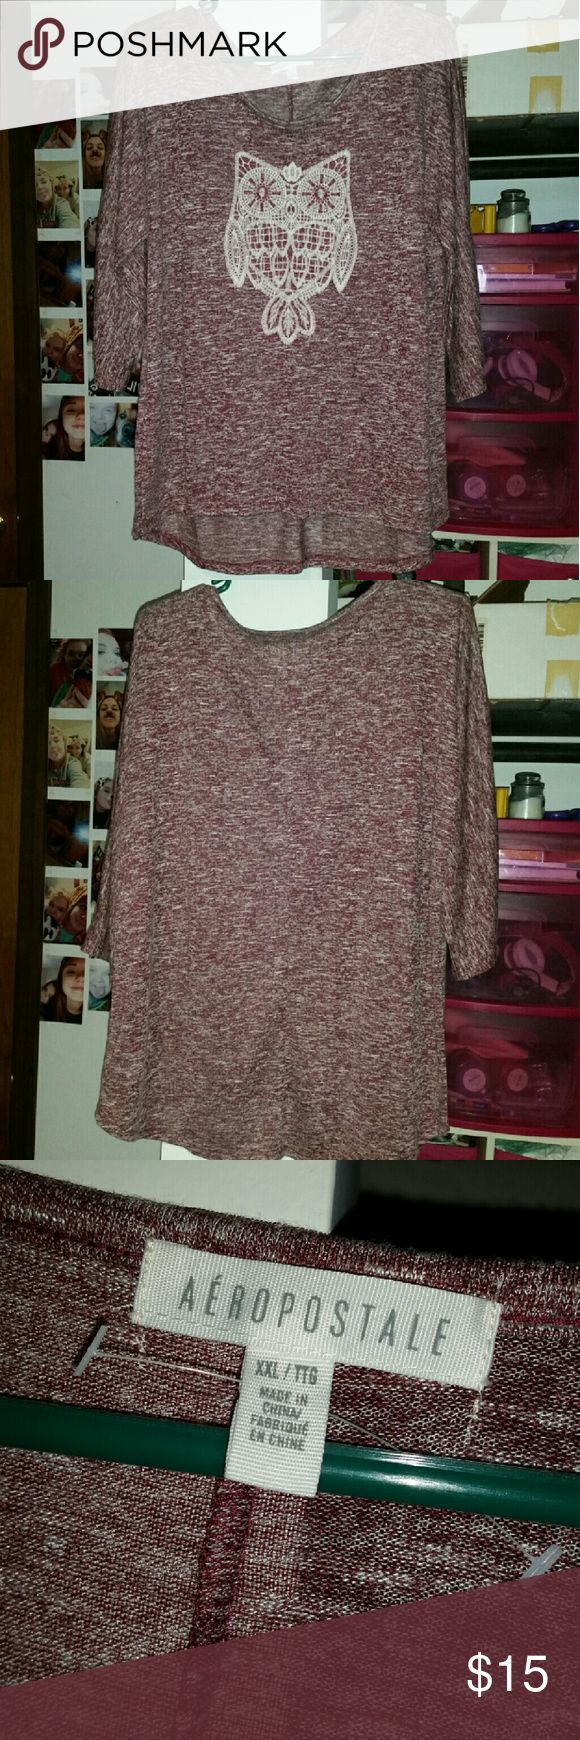 beautiful owl shirt. Only worn once, just not my style. has nothing wrong with it. super cute. very soft. Aeropostale Tops